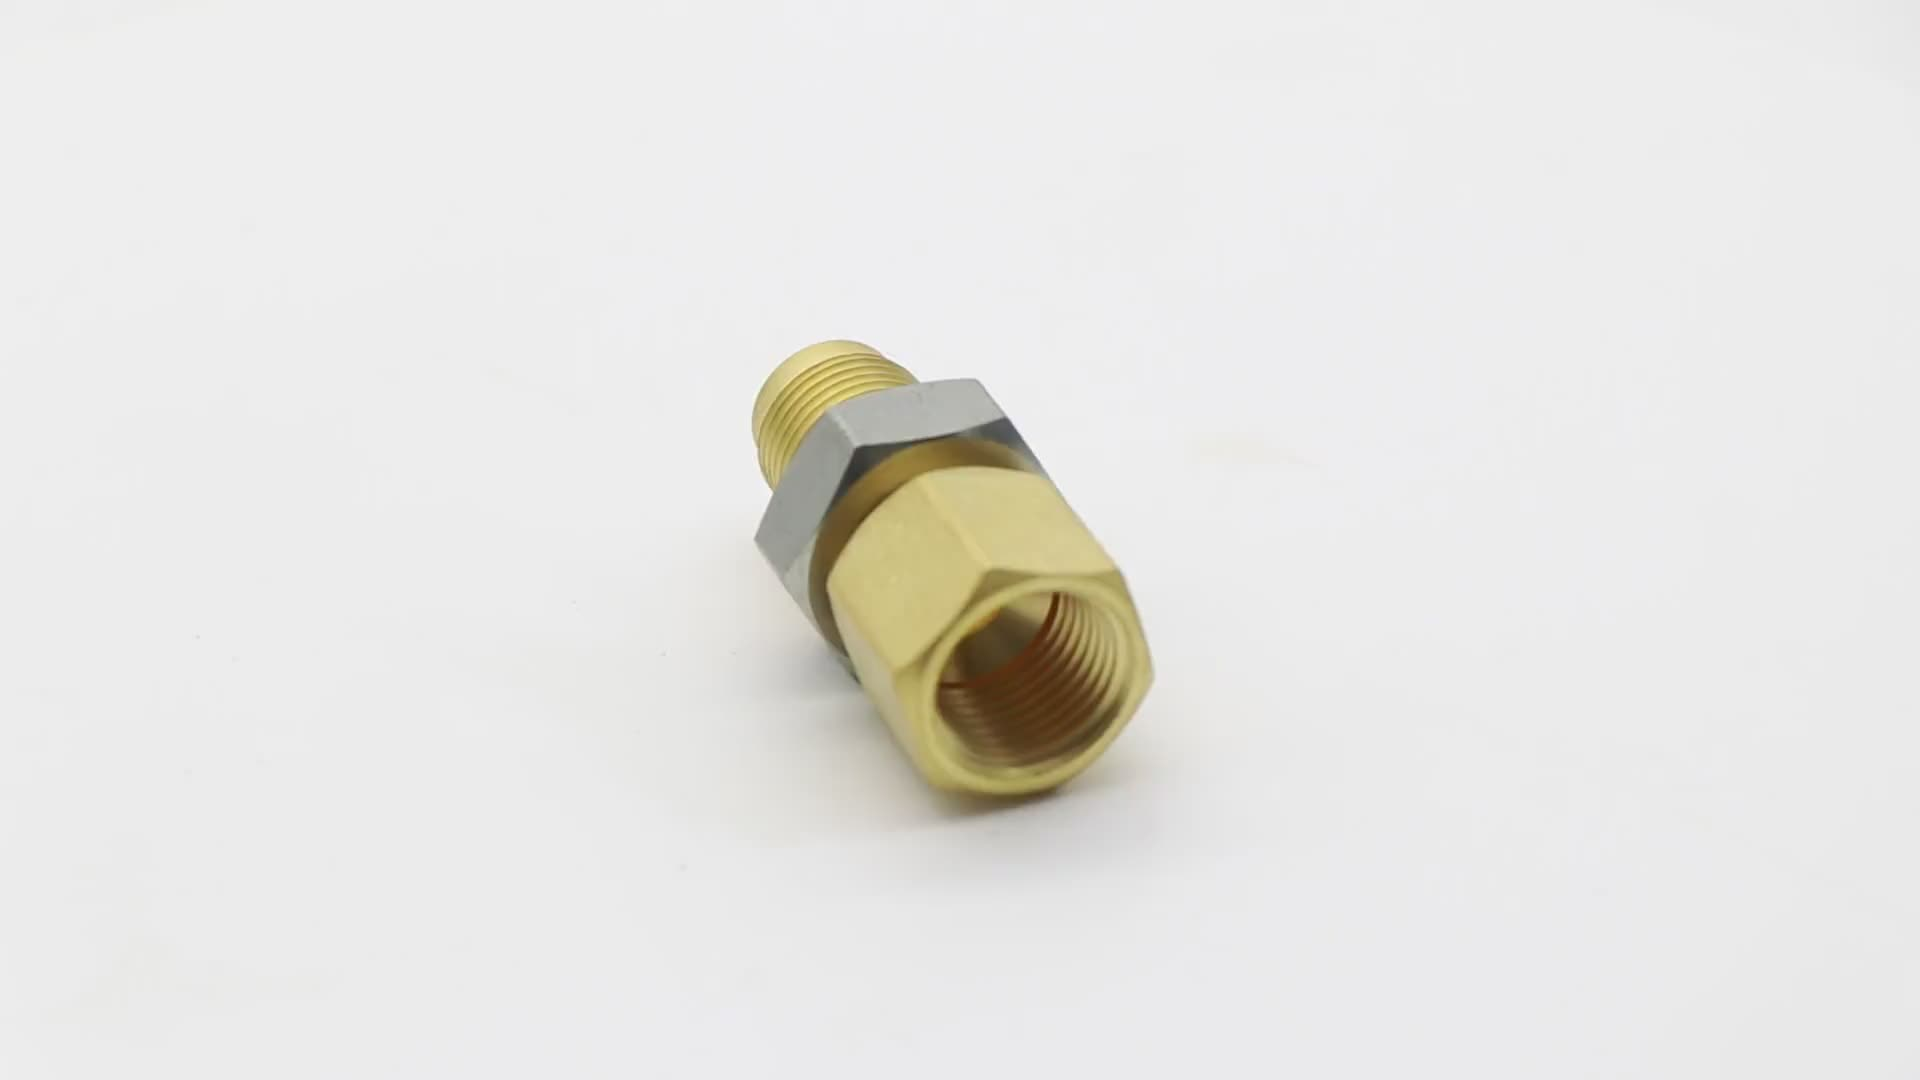 K527  45-degree angle flare fitting Direct coupling copper male and female threaded for gas